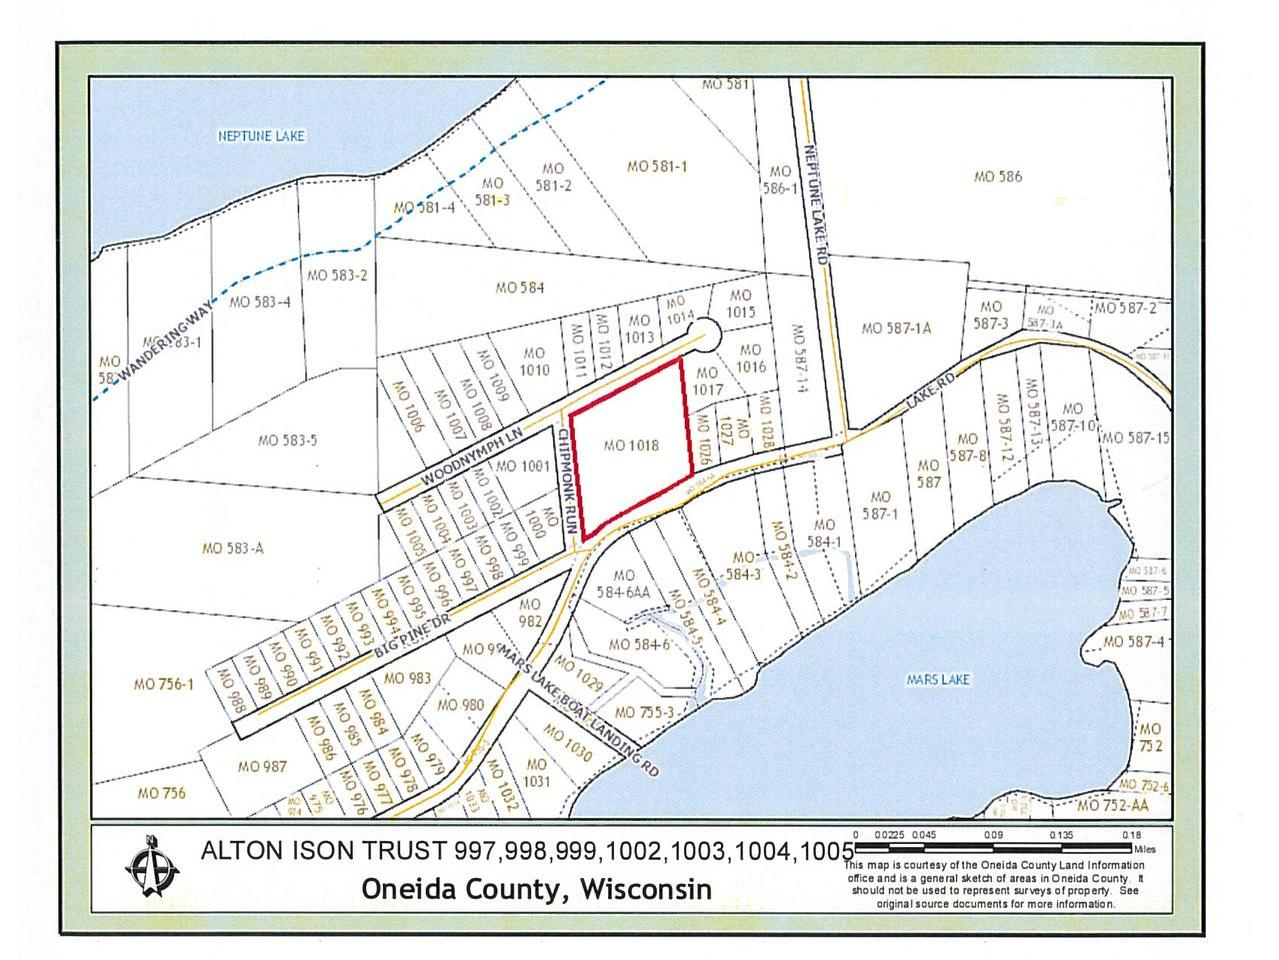 Approximately 4.17 acre building lot zoned single family residential located in a quiet country neighborhood between Rhinelander, Three Lakes, and Crandon. The parcel is within walking distance to the Mars Lake boat landing with Neptune and Venus Lakes nearby. Utilities include electric, gas, telephone, and cable.